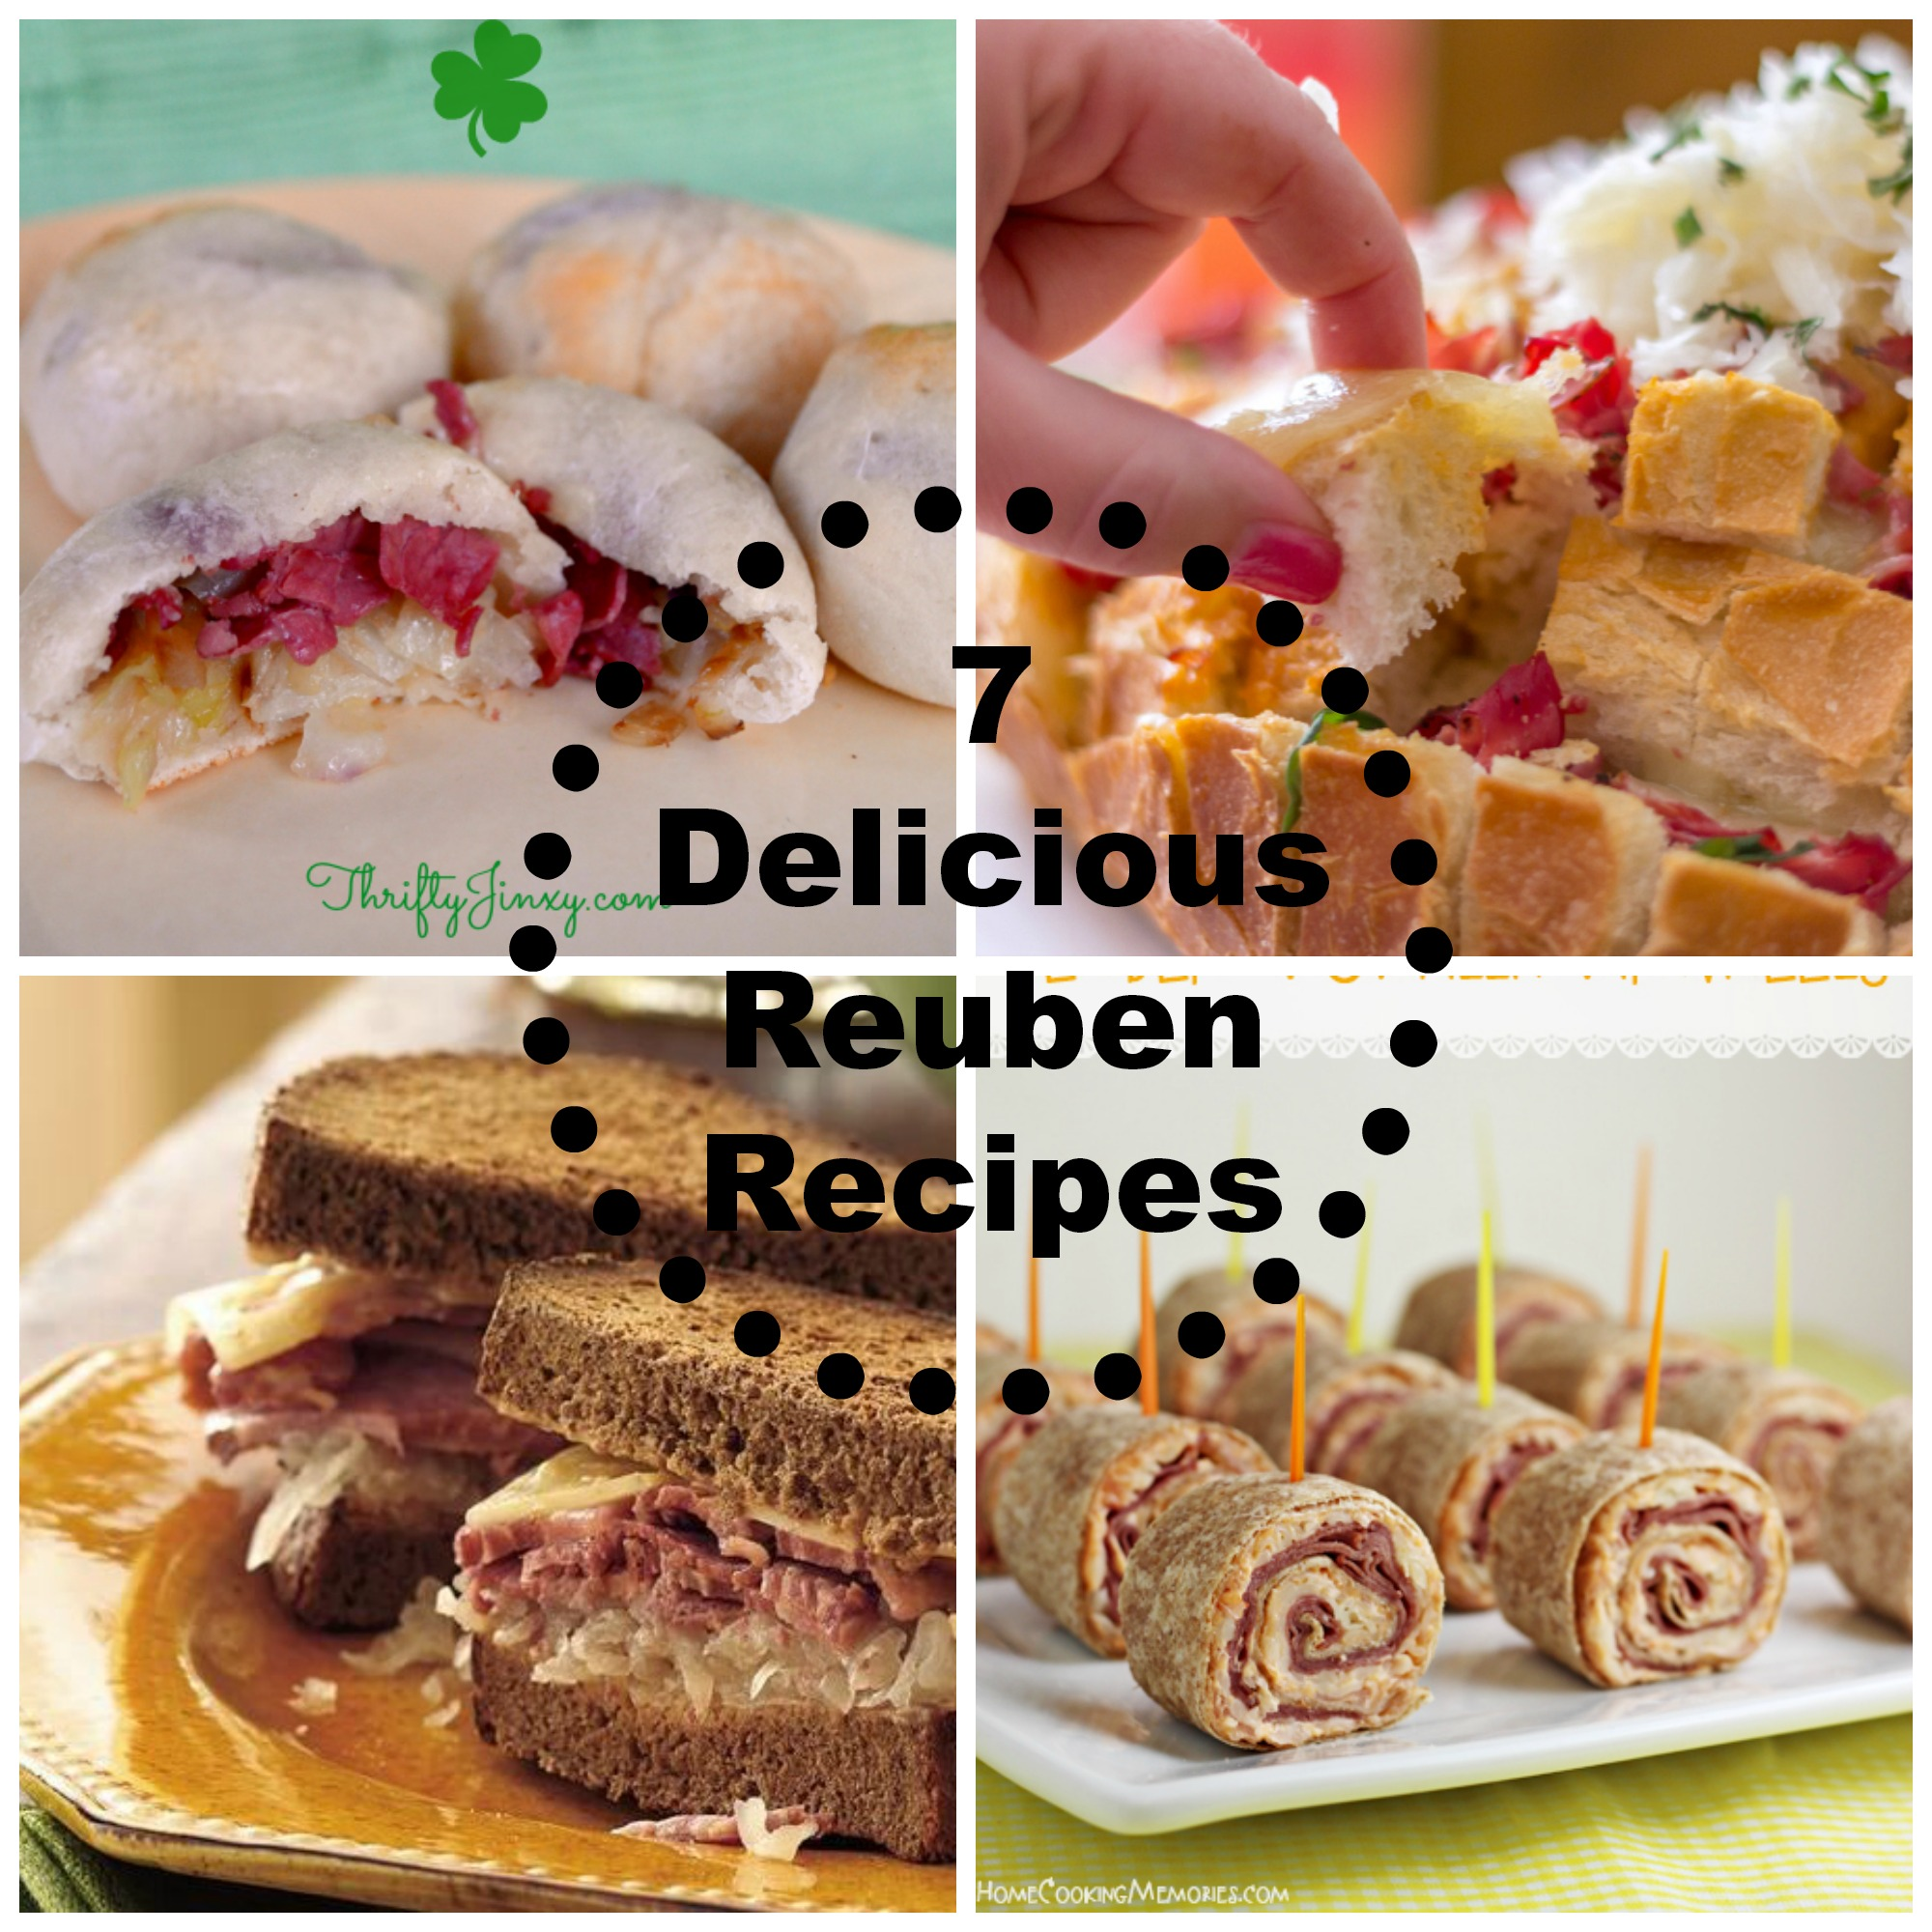 Six Delicious Reuben Sandwiches Recipes